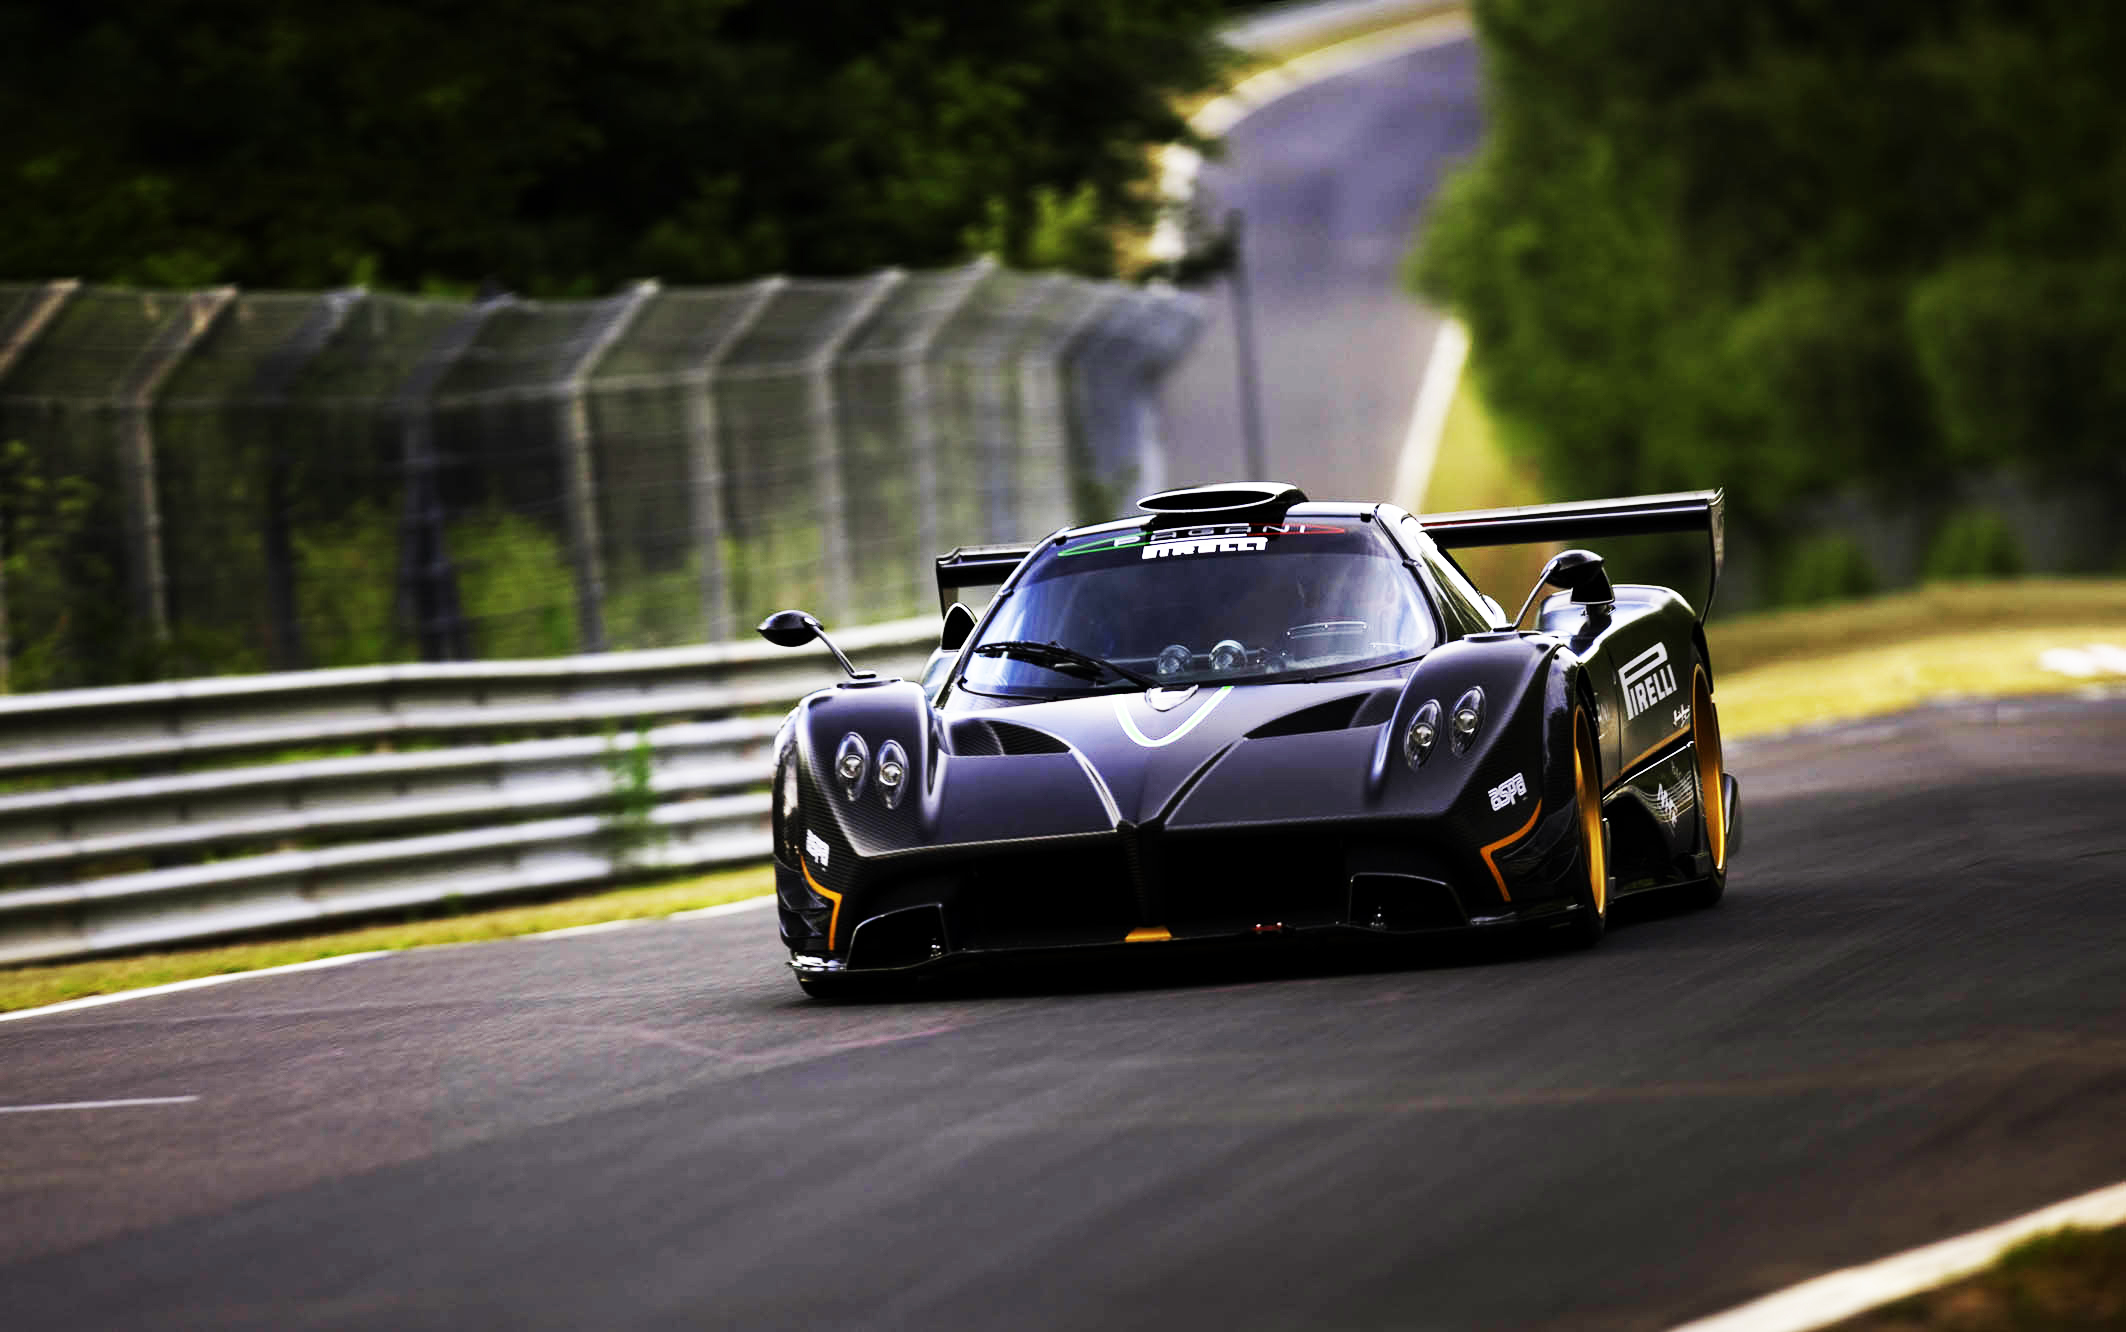 Wonderful Pagani Zonda R Wallpaper Hd 2126x1332